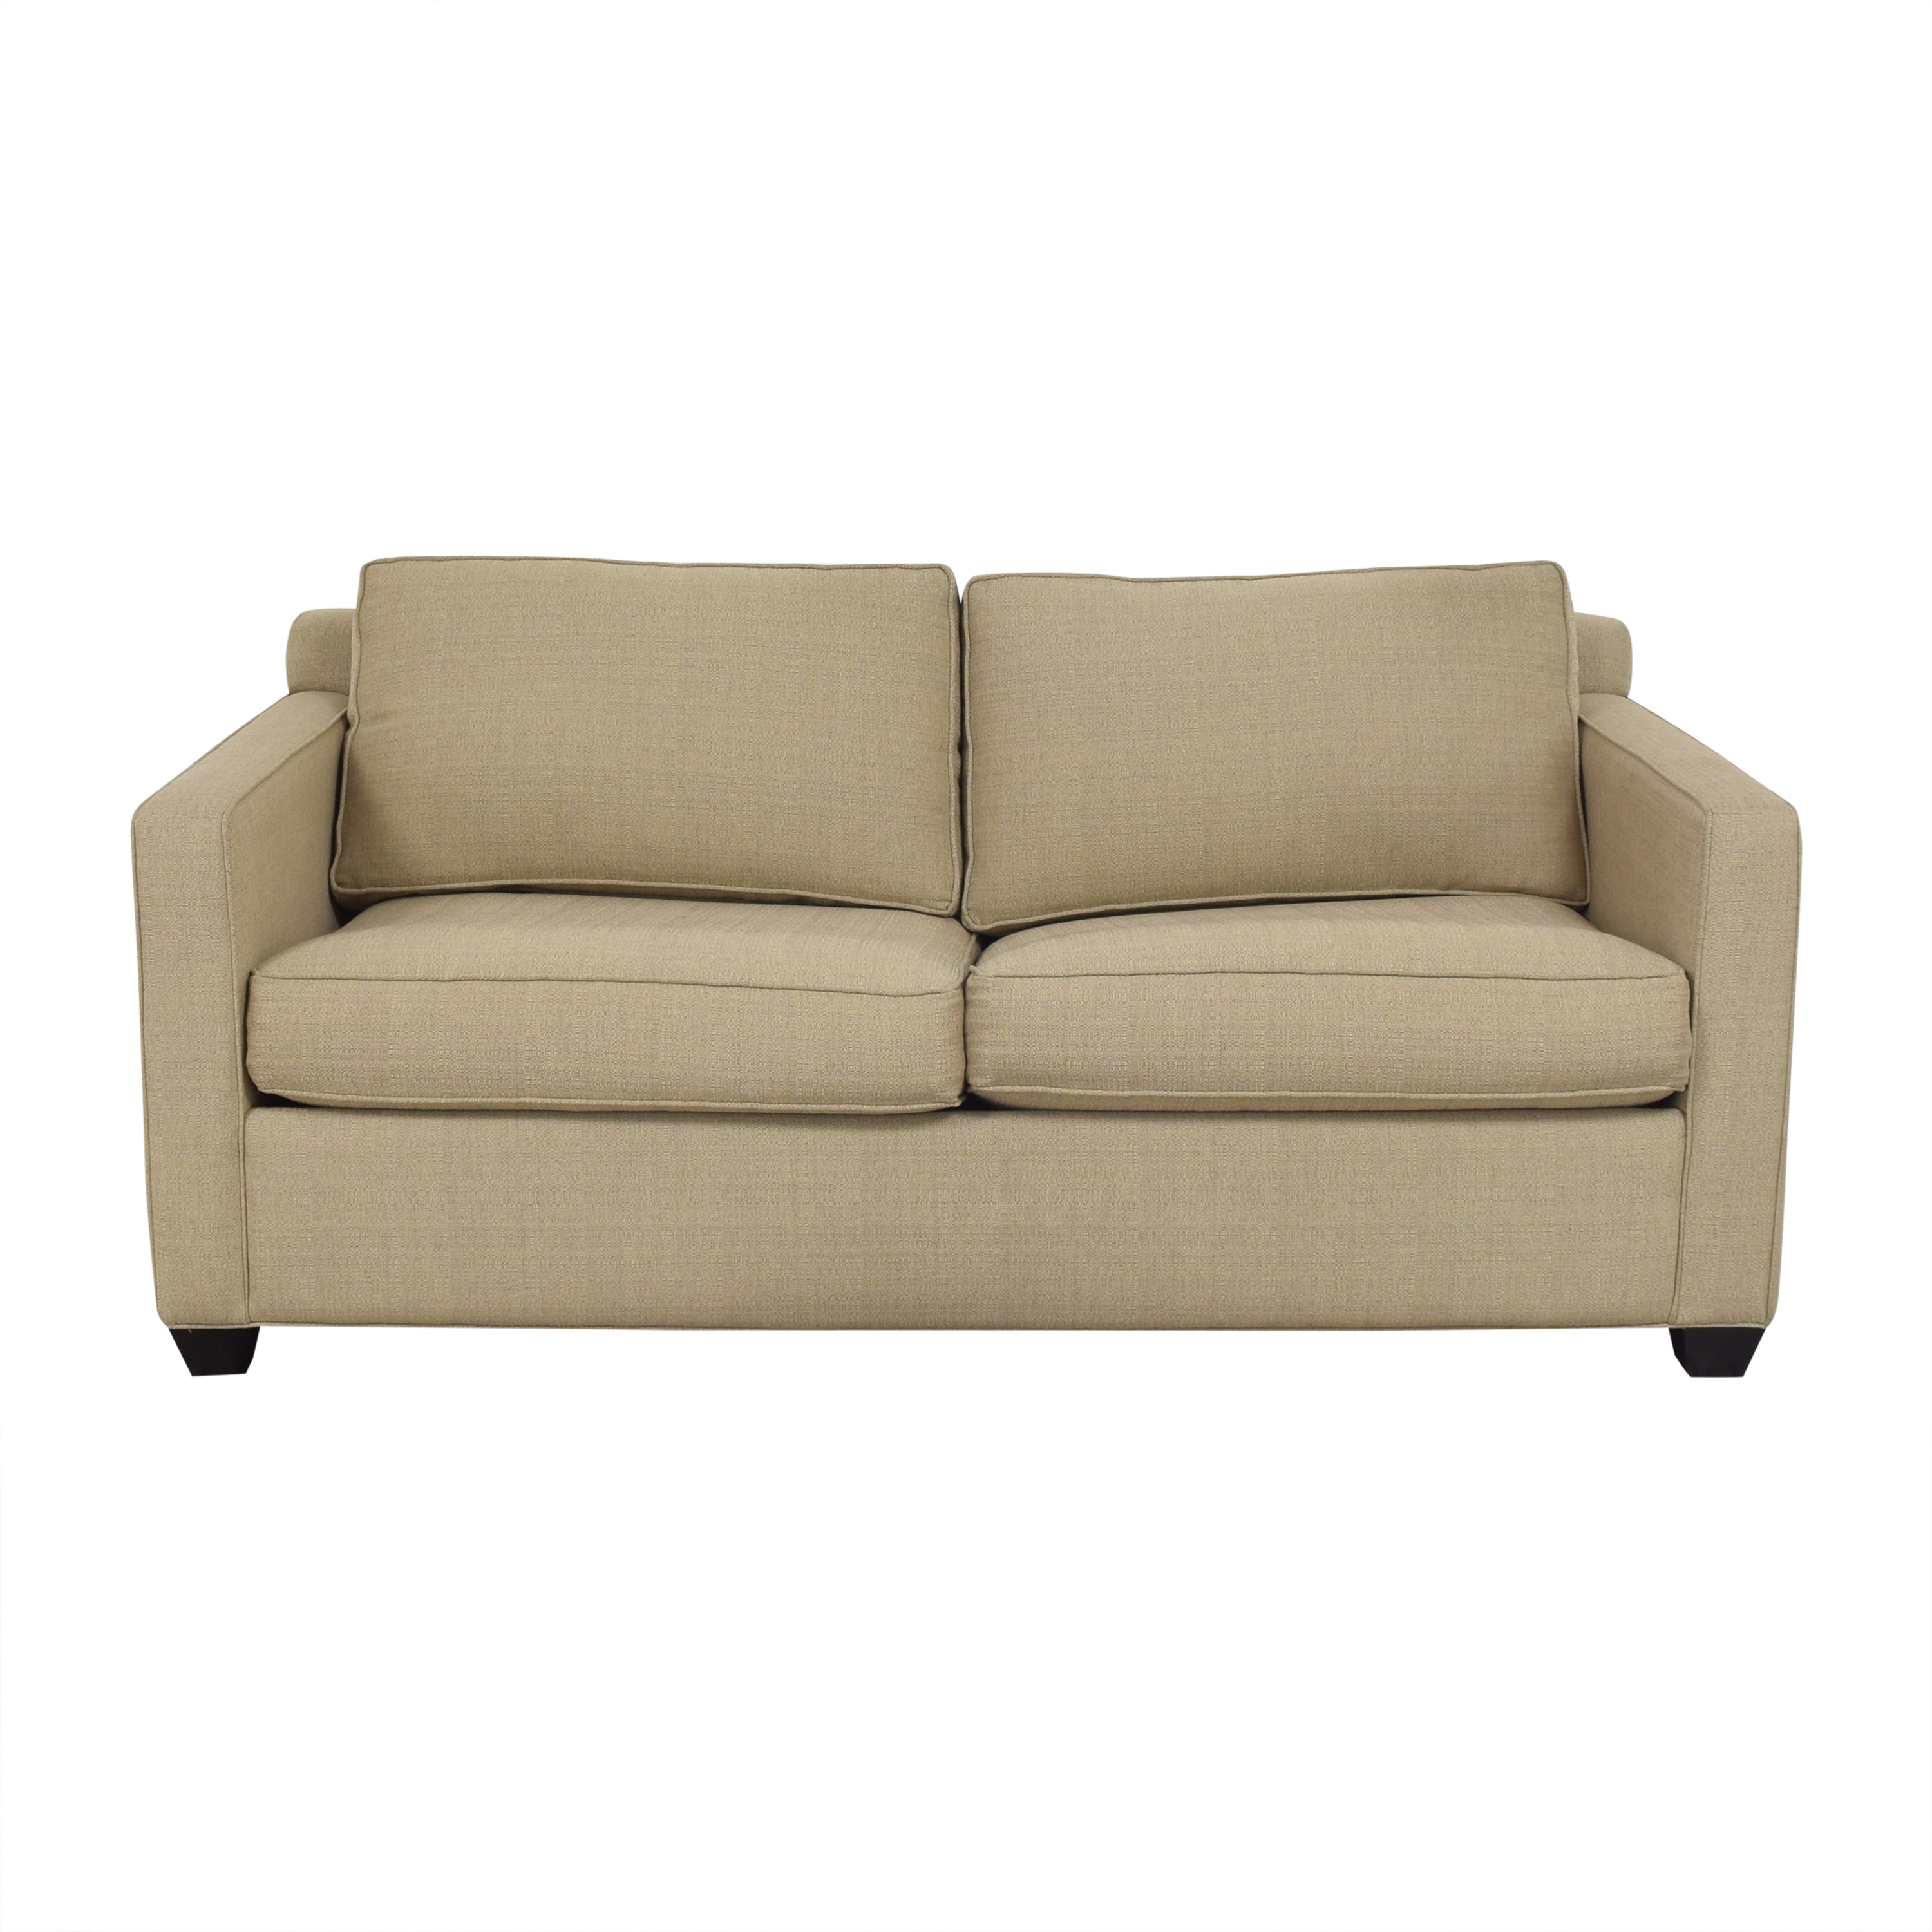 Younger Furniture Younger Furniture Two Cushion Sleeper Sofa for sale